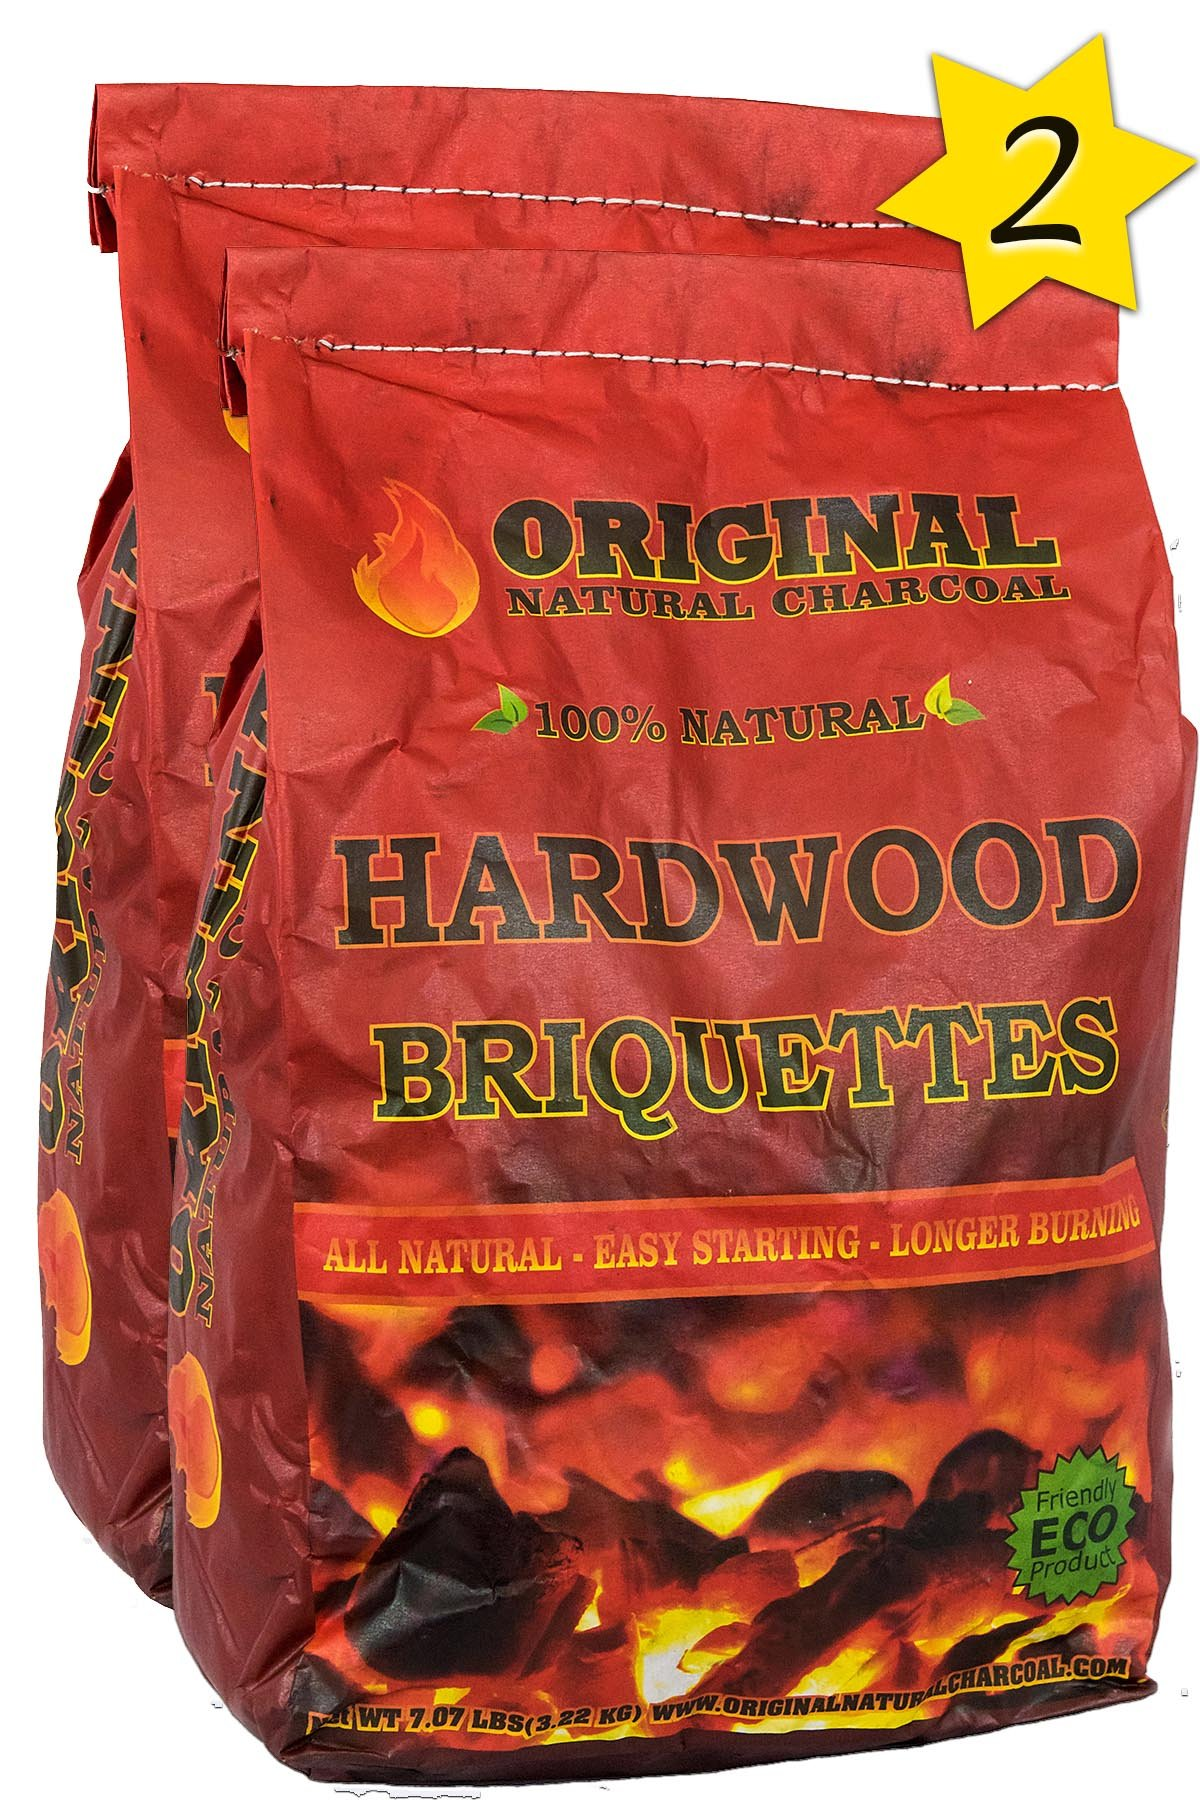 Original Natural Charcoal Hardwood Briquettes 2 X 100% Premium All-Natural Pillow Shaped Charcoals - Lights Easy, Burns Quickly, Adds Extra Flavor to Meats - 100% (7.07 lb.) by Original Natural Charcoal